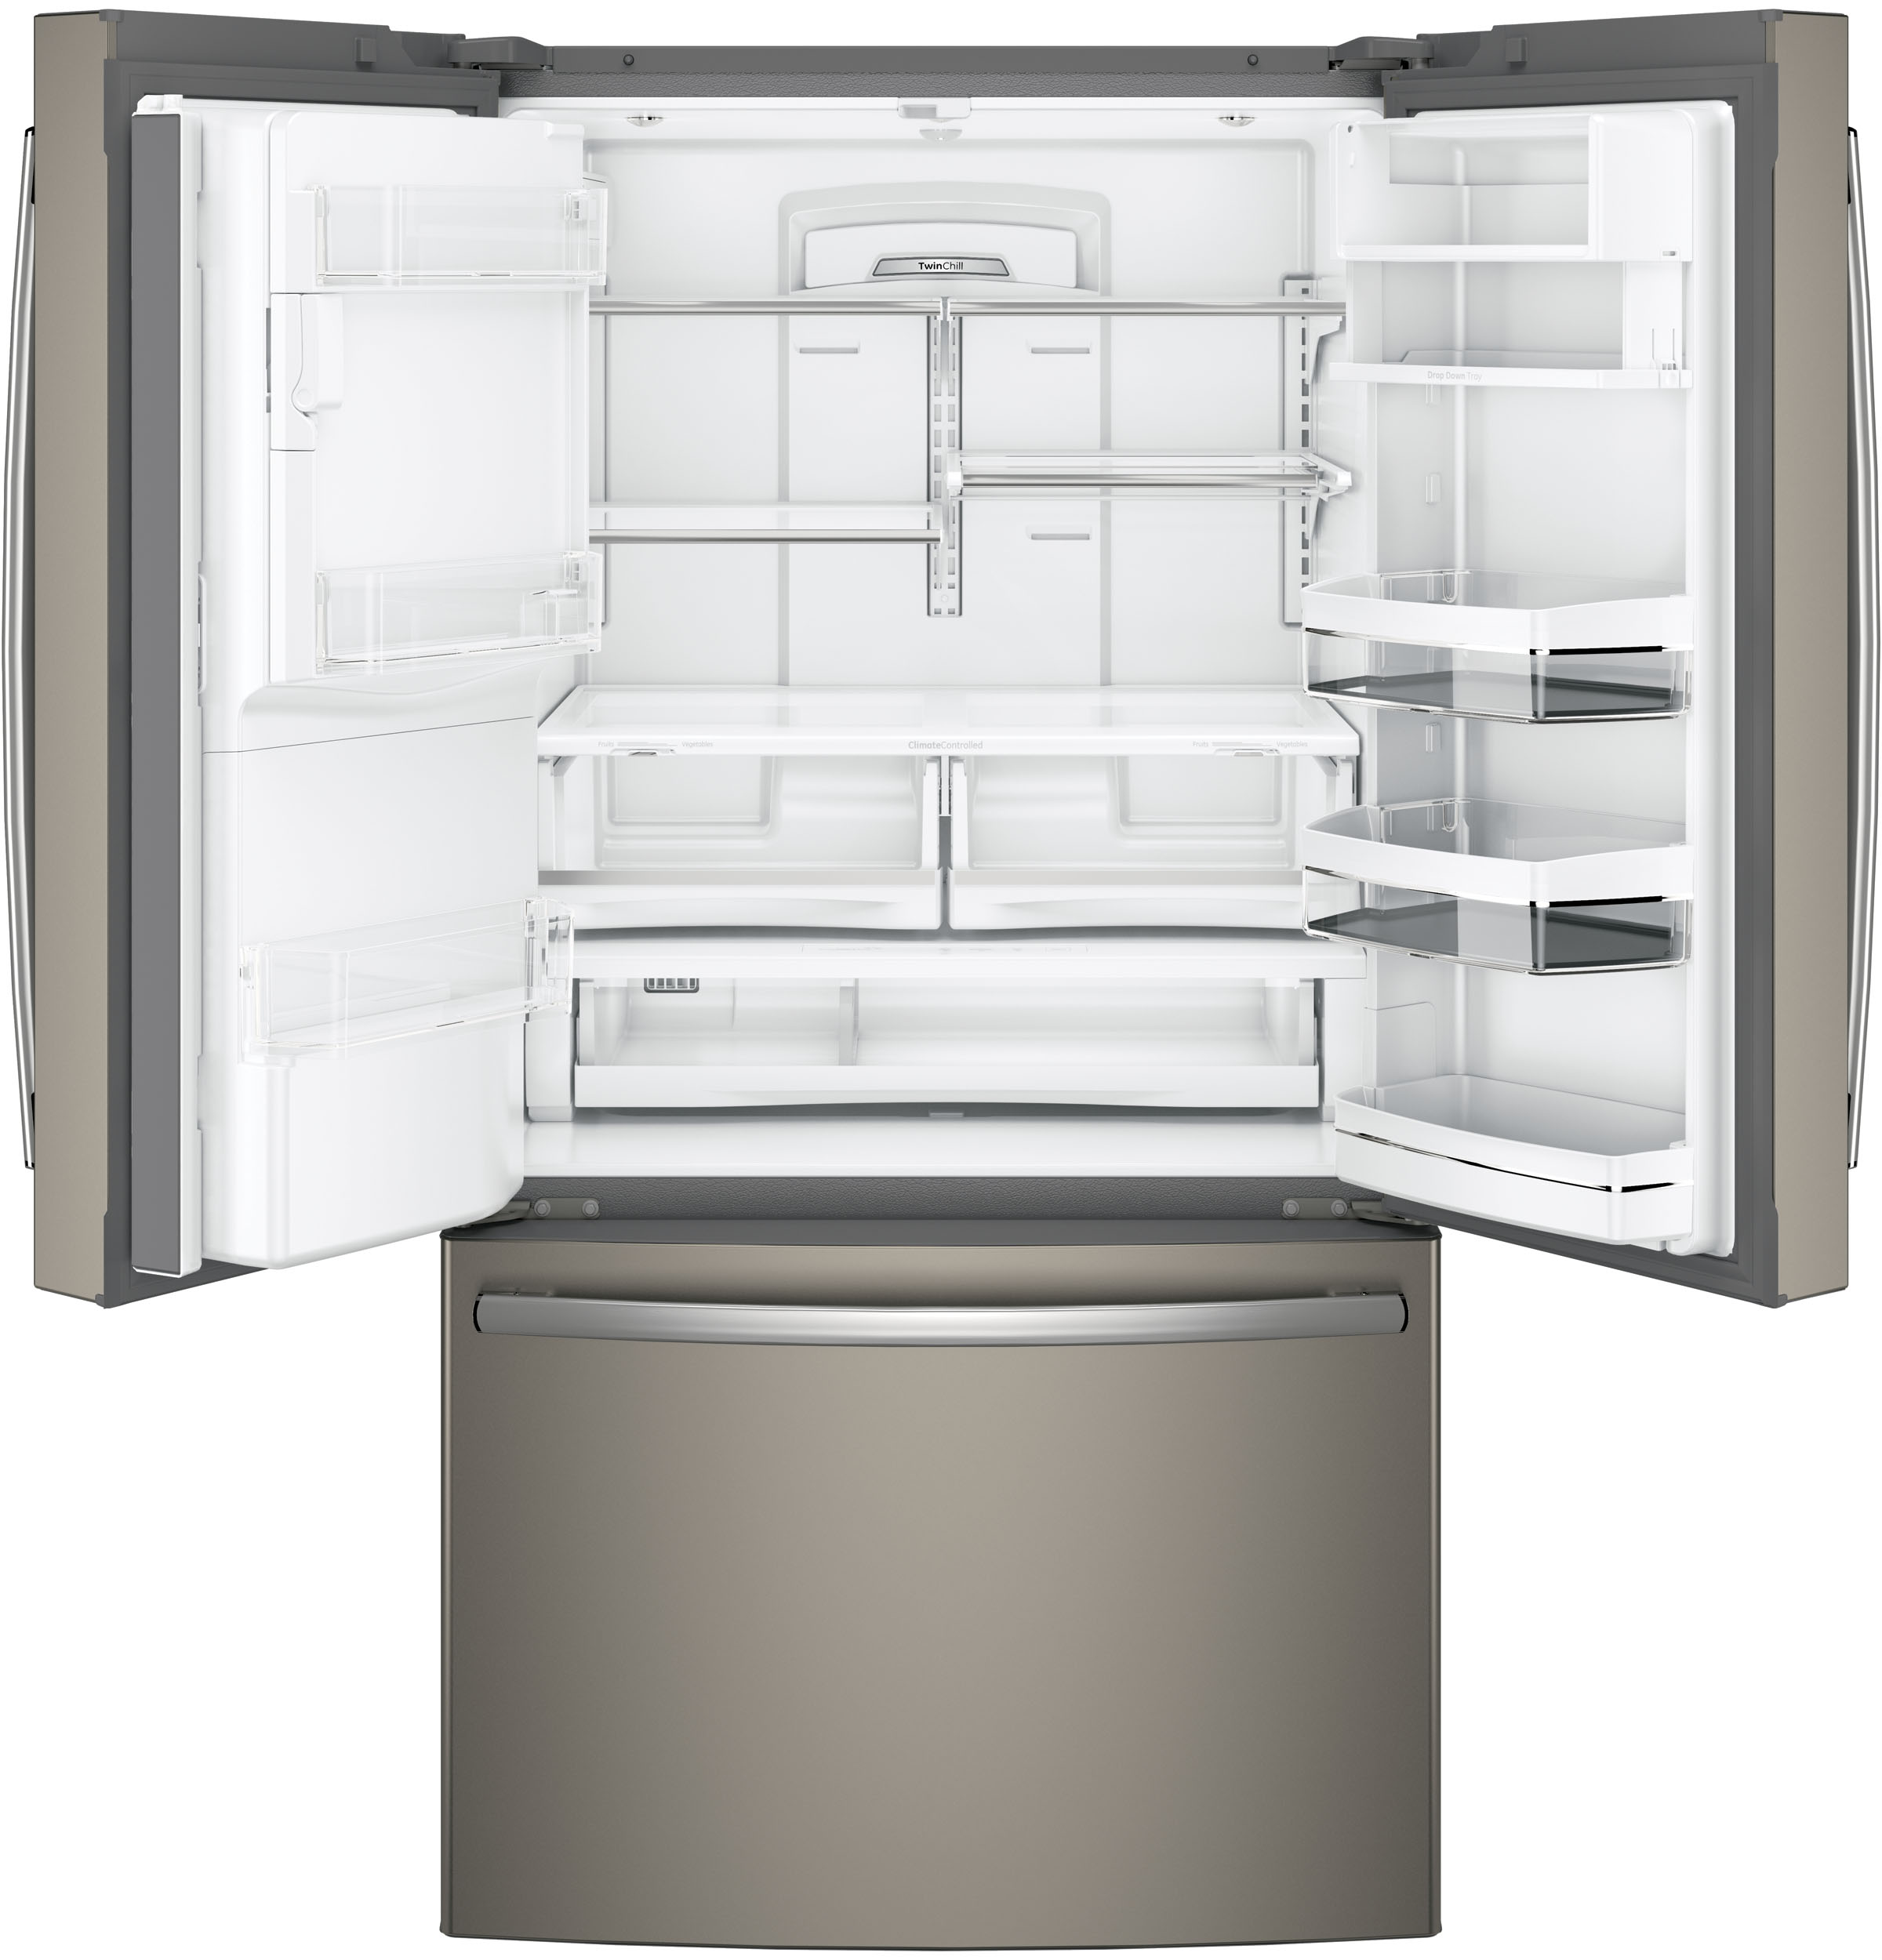 Design Ge Slate Refrigerator ge series energy 27 8 cu ft french door product image image